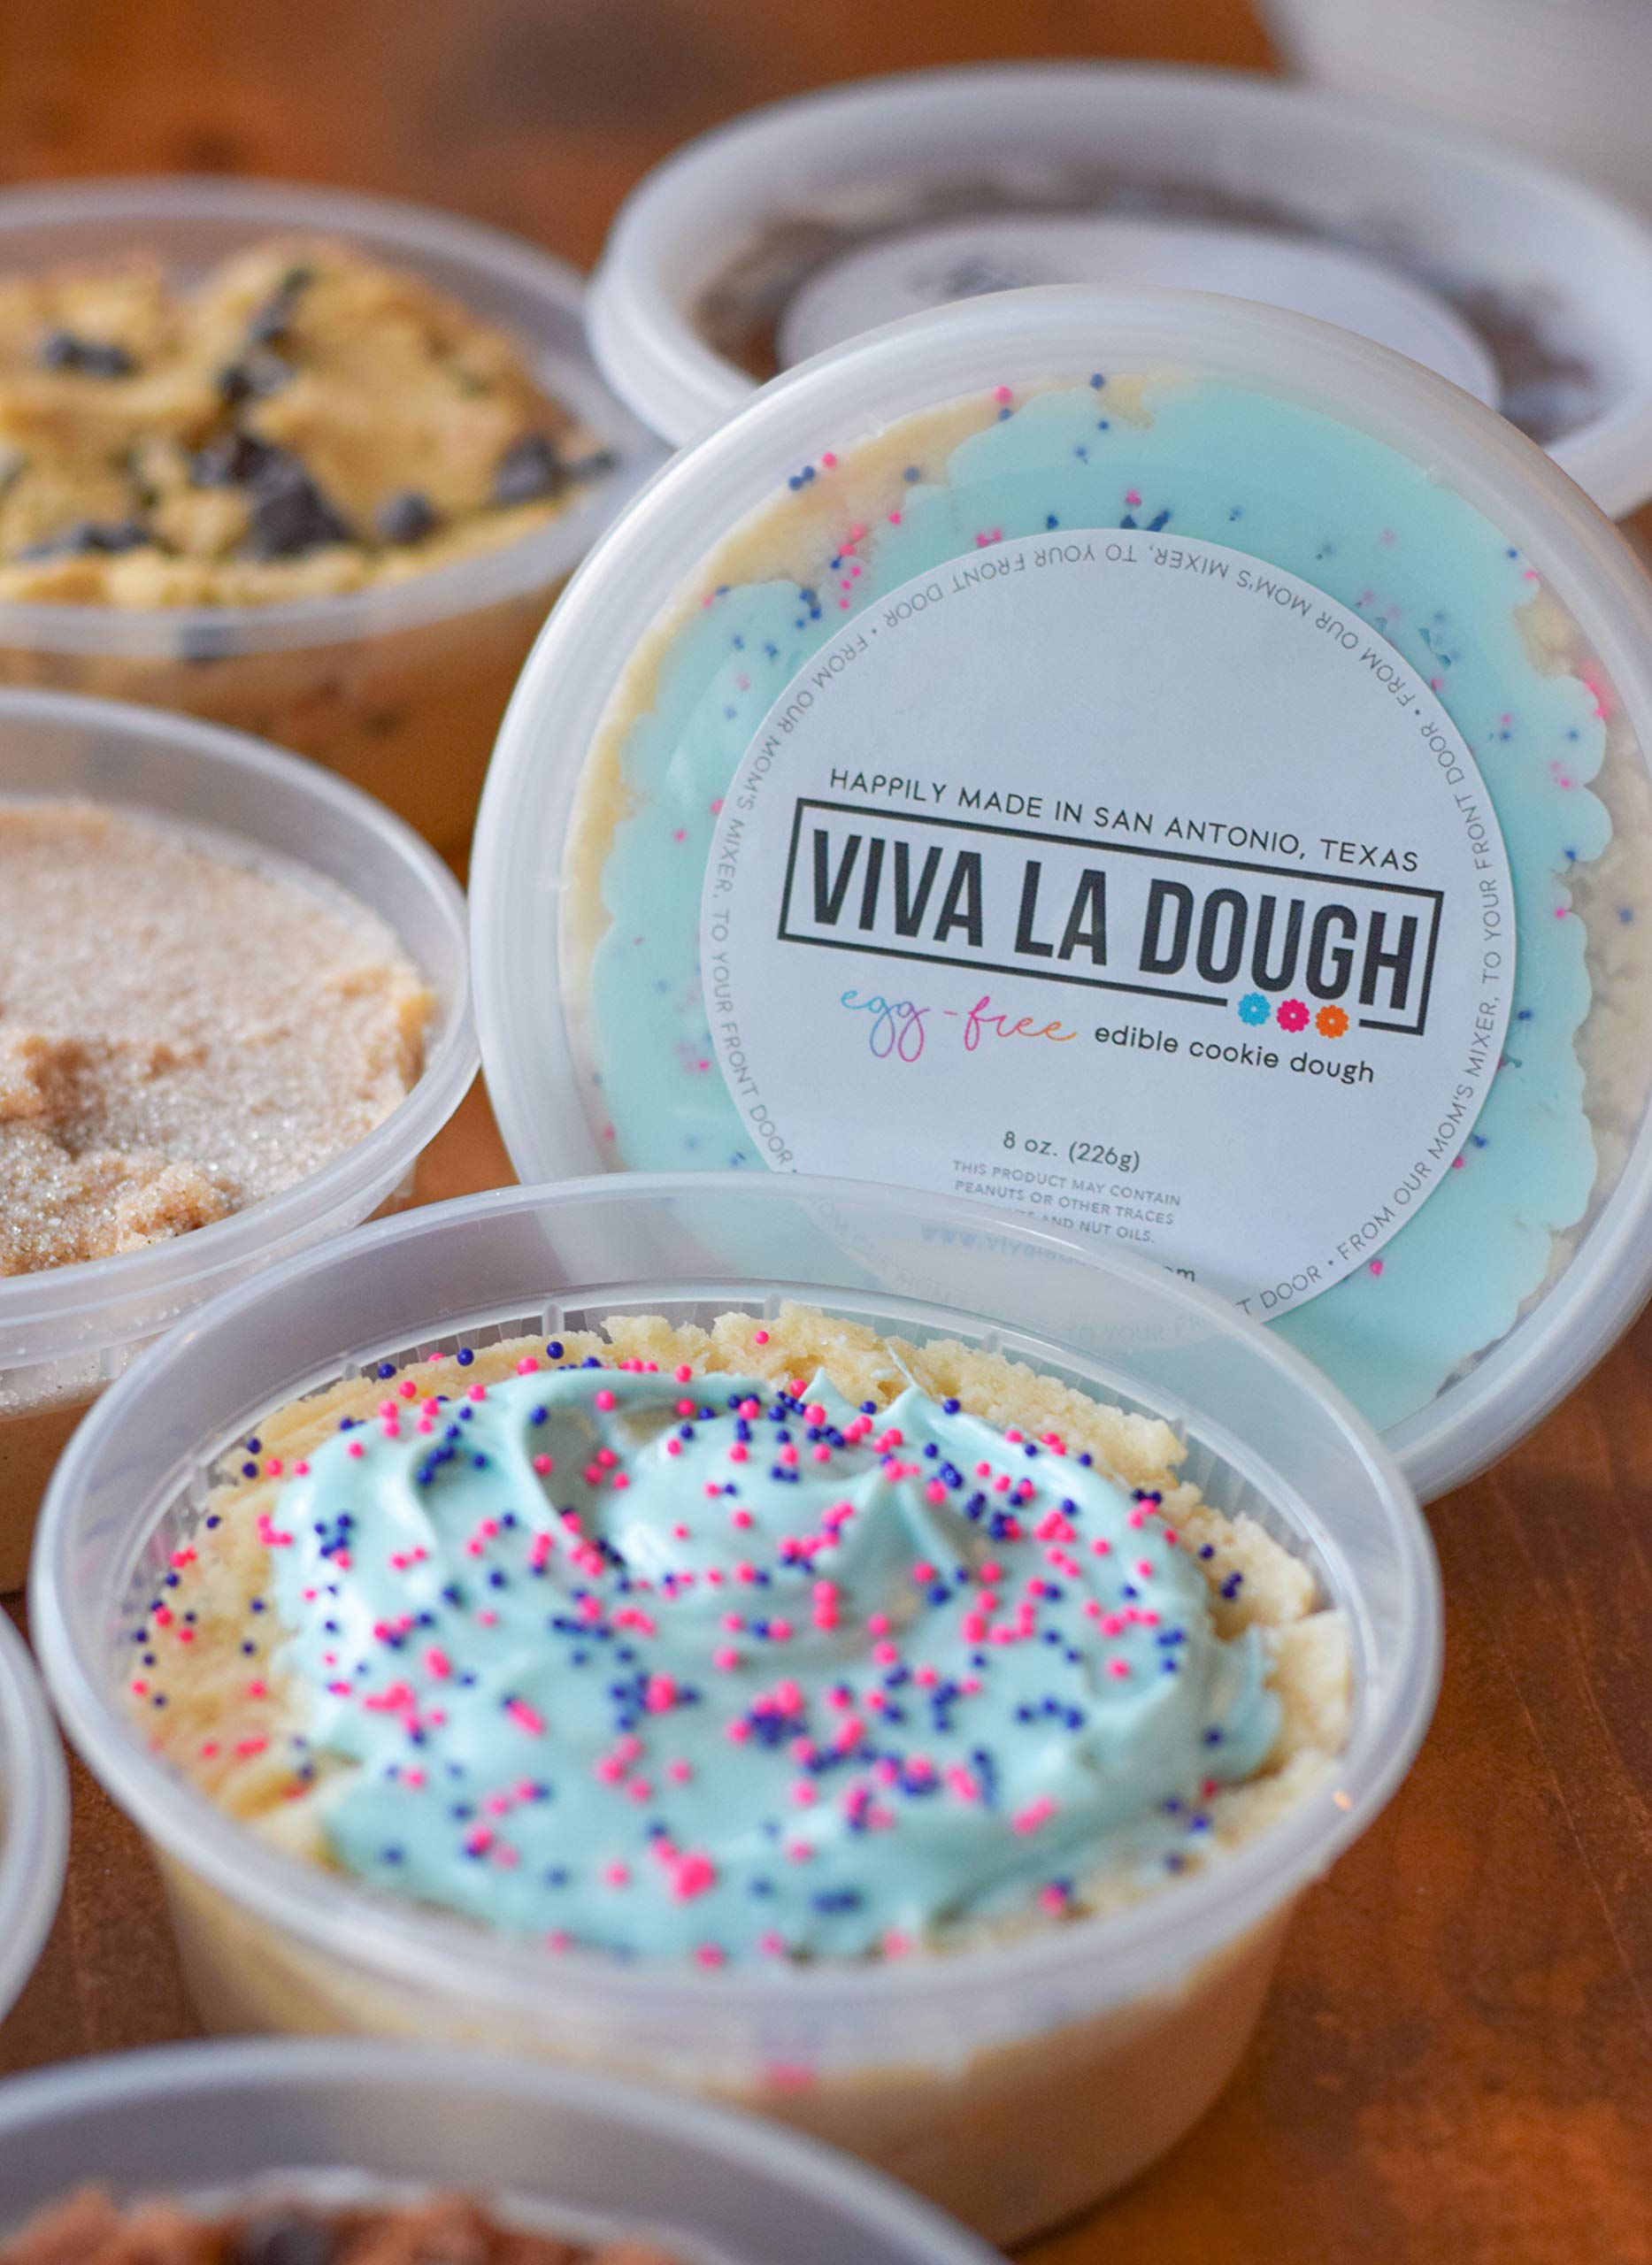 Viva La Dough Edible Cookie Dough - 100% Egg-Free - Birthday Cake (1 Pack - 8oz)